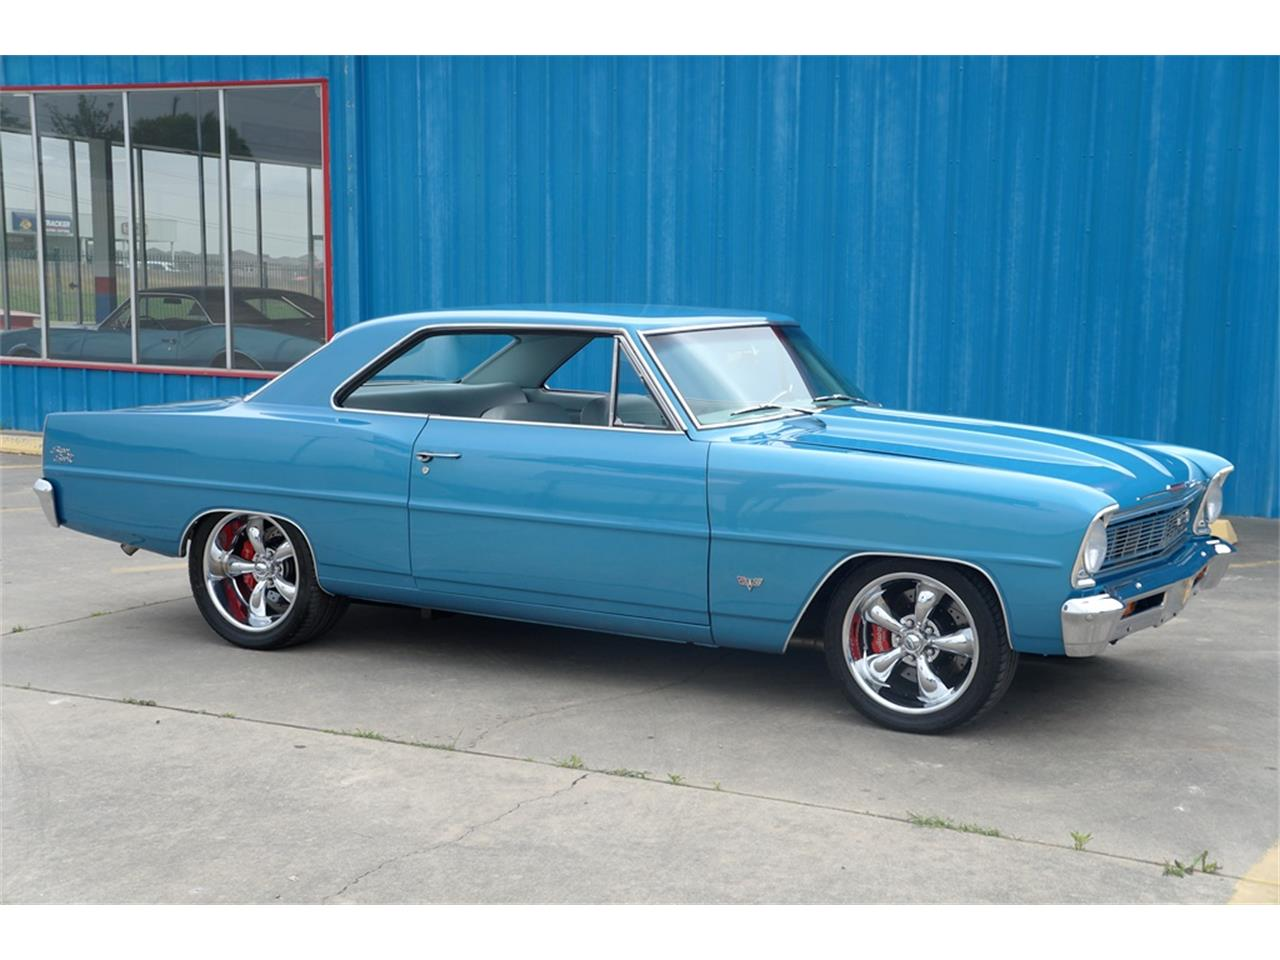 Large Picture of '66 Chevrolet Nova - $64,900.00 Offered by A&E Classic Cars - PWOL